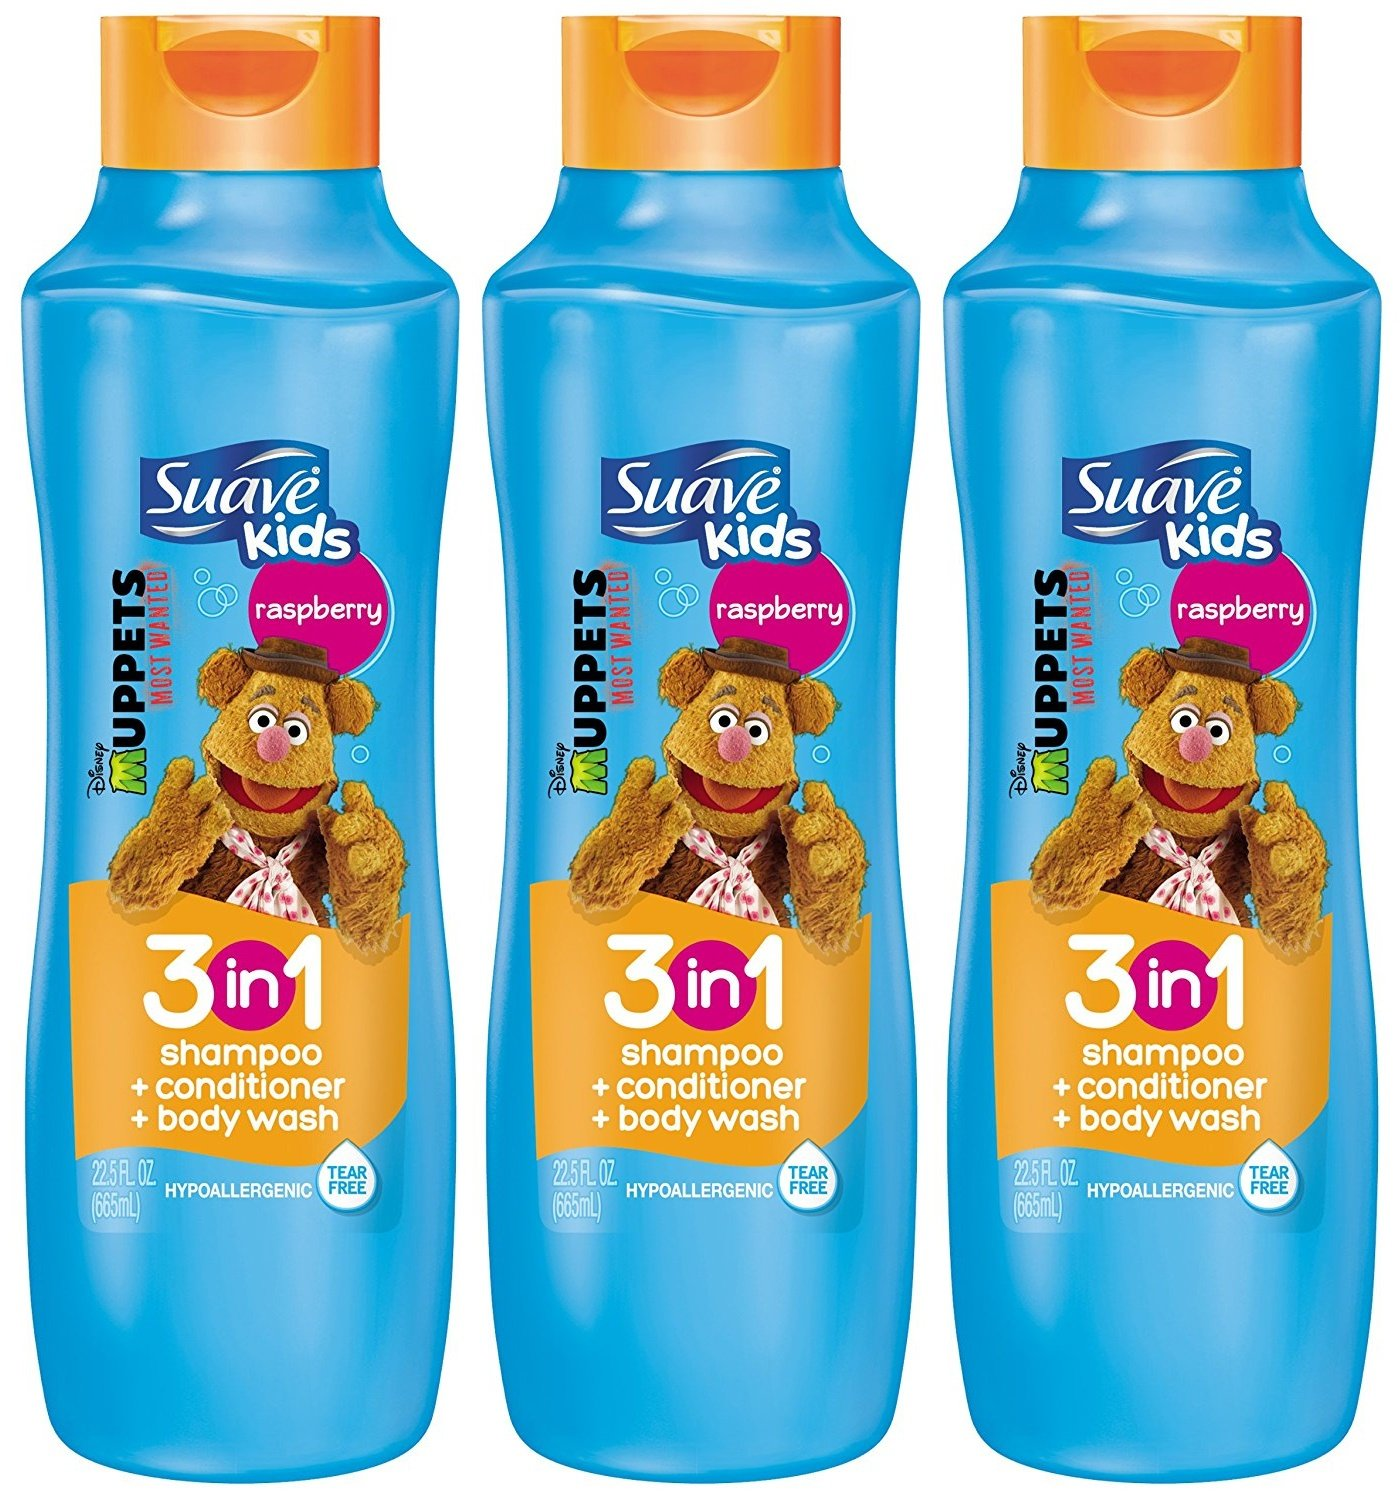 Suave Kids 3 in 1 Shampoo Conditioner and Body Wash, Razzle Dazzle Raspberry, 22.5 Ounce (Pack of 3) Packaging May Vary